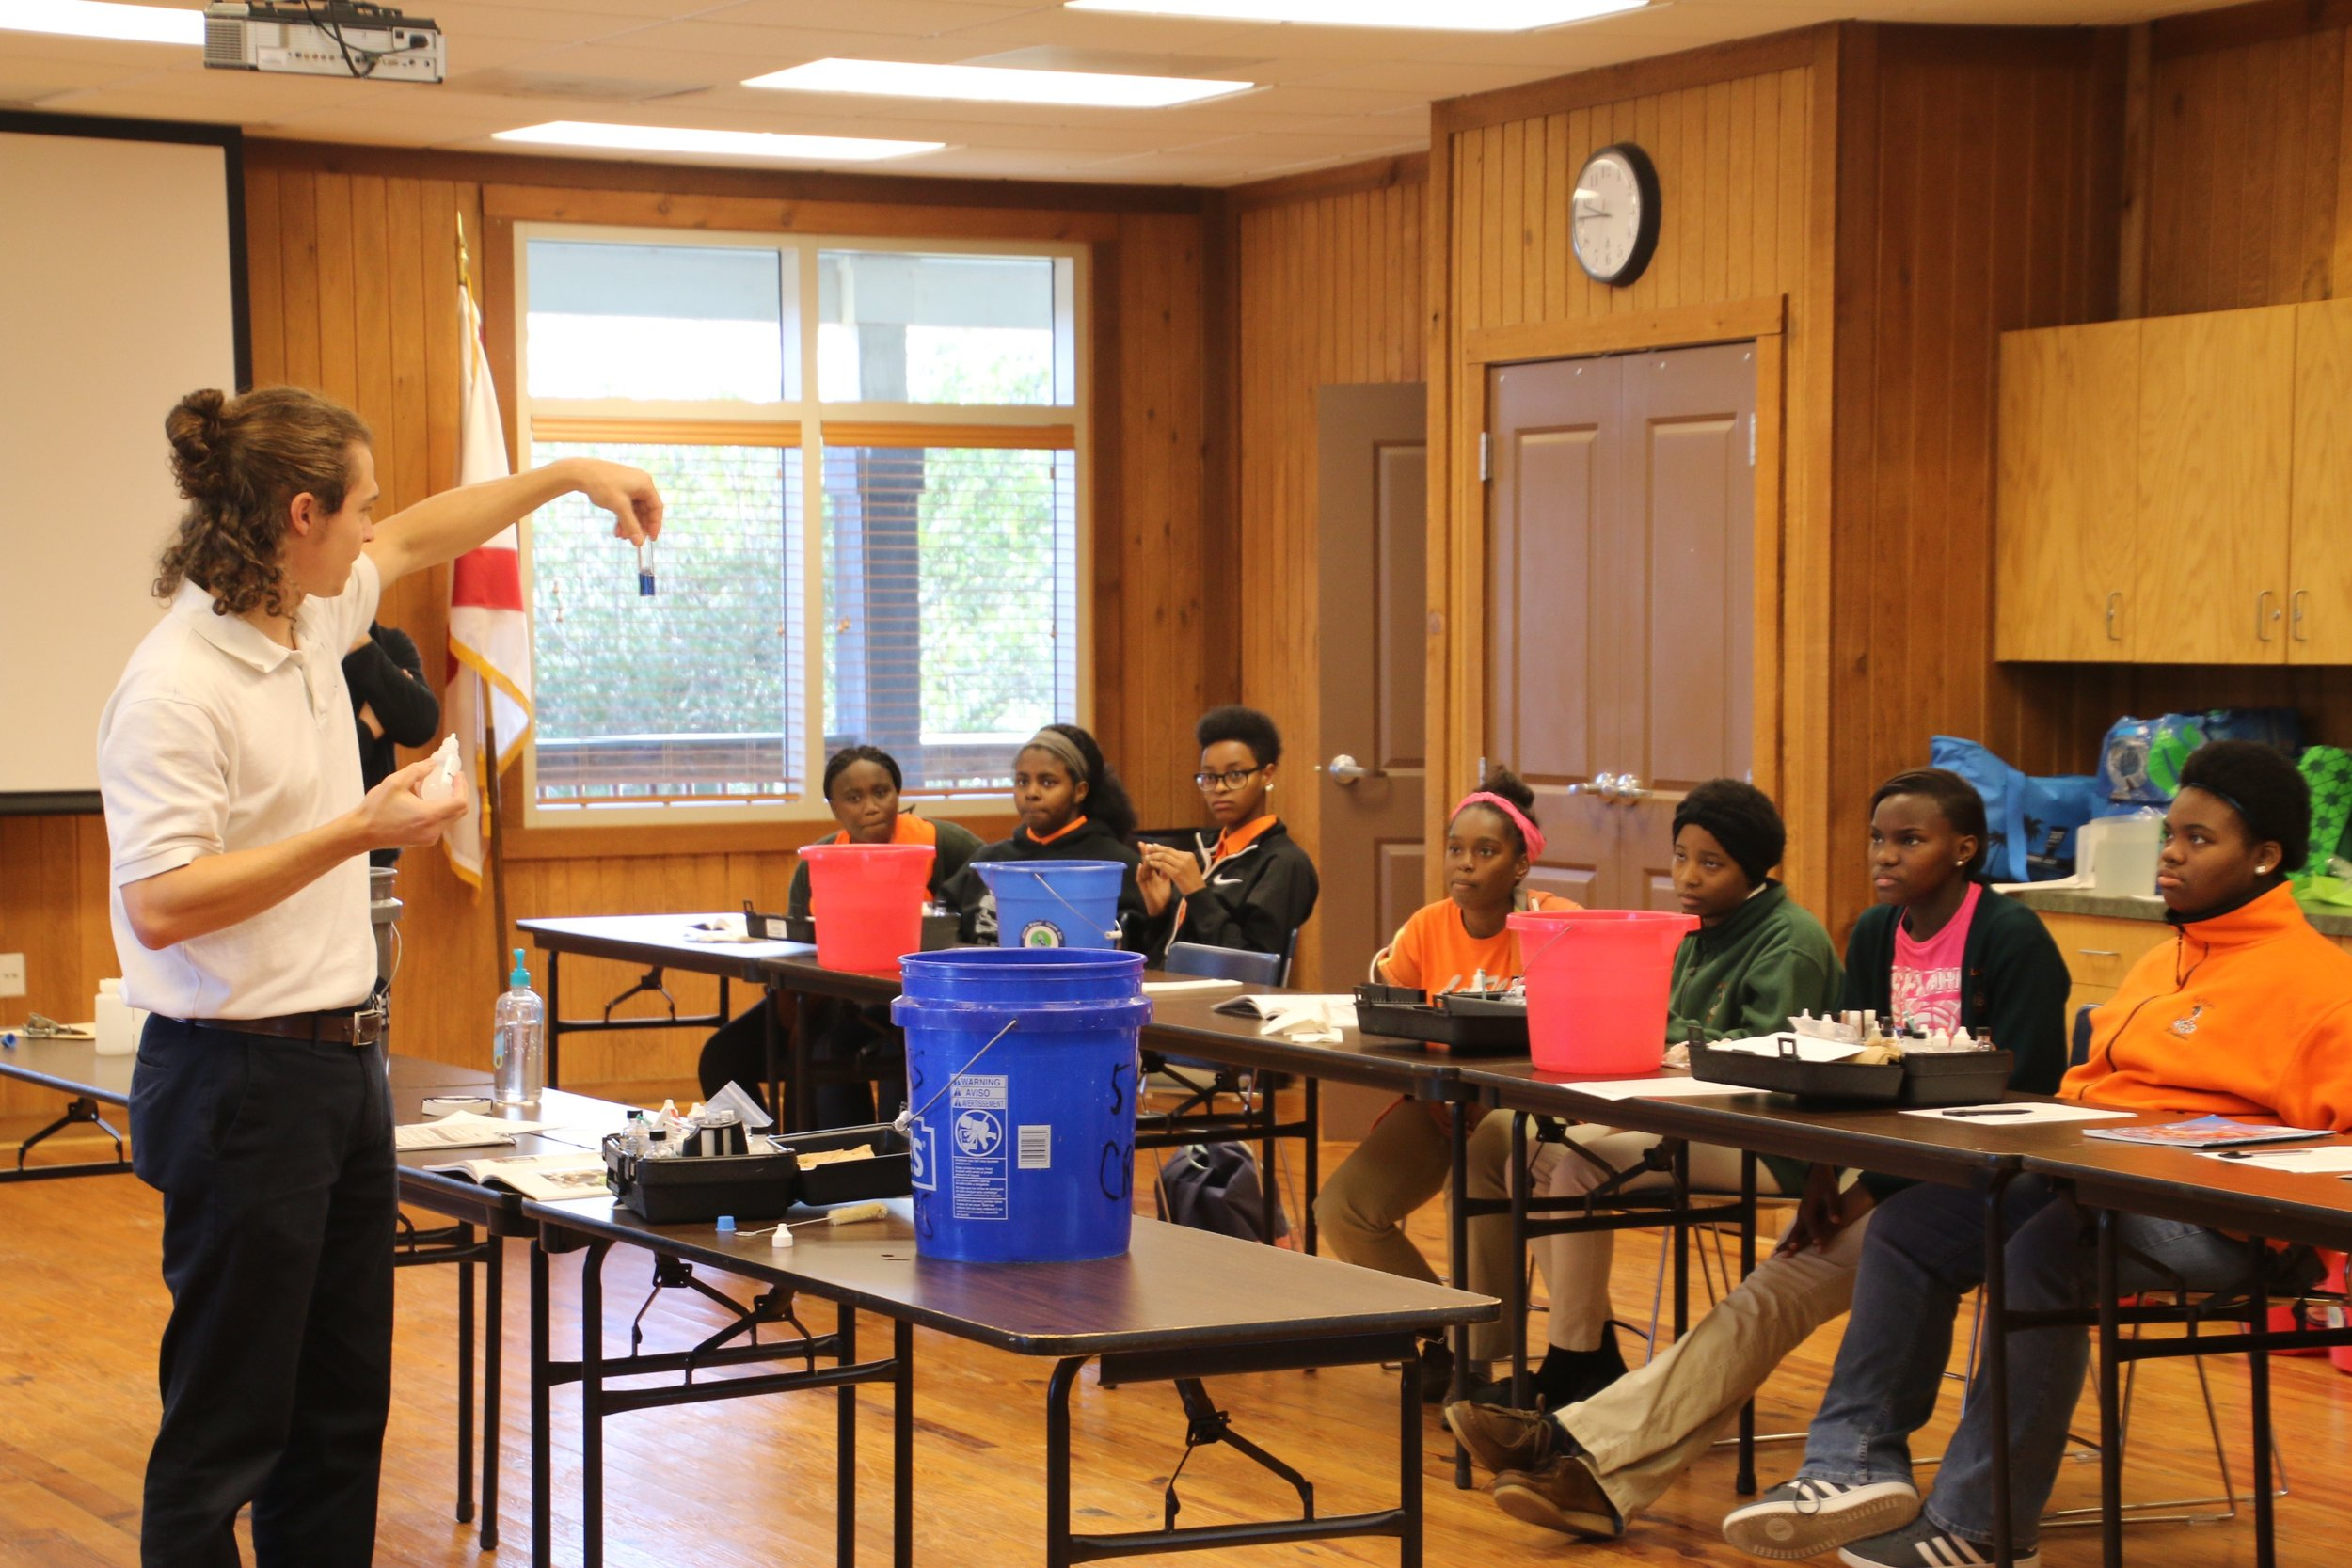 Program Director Cade Kistler trains students from LeFlore High School to become certified water quality monitors.